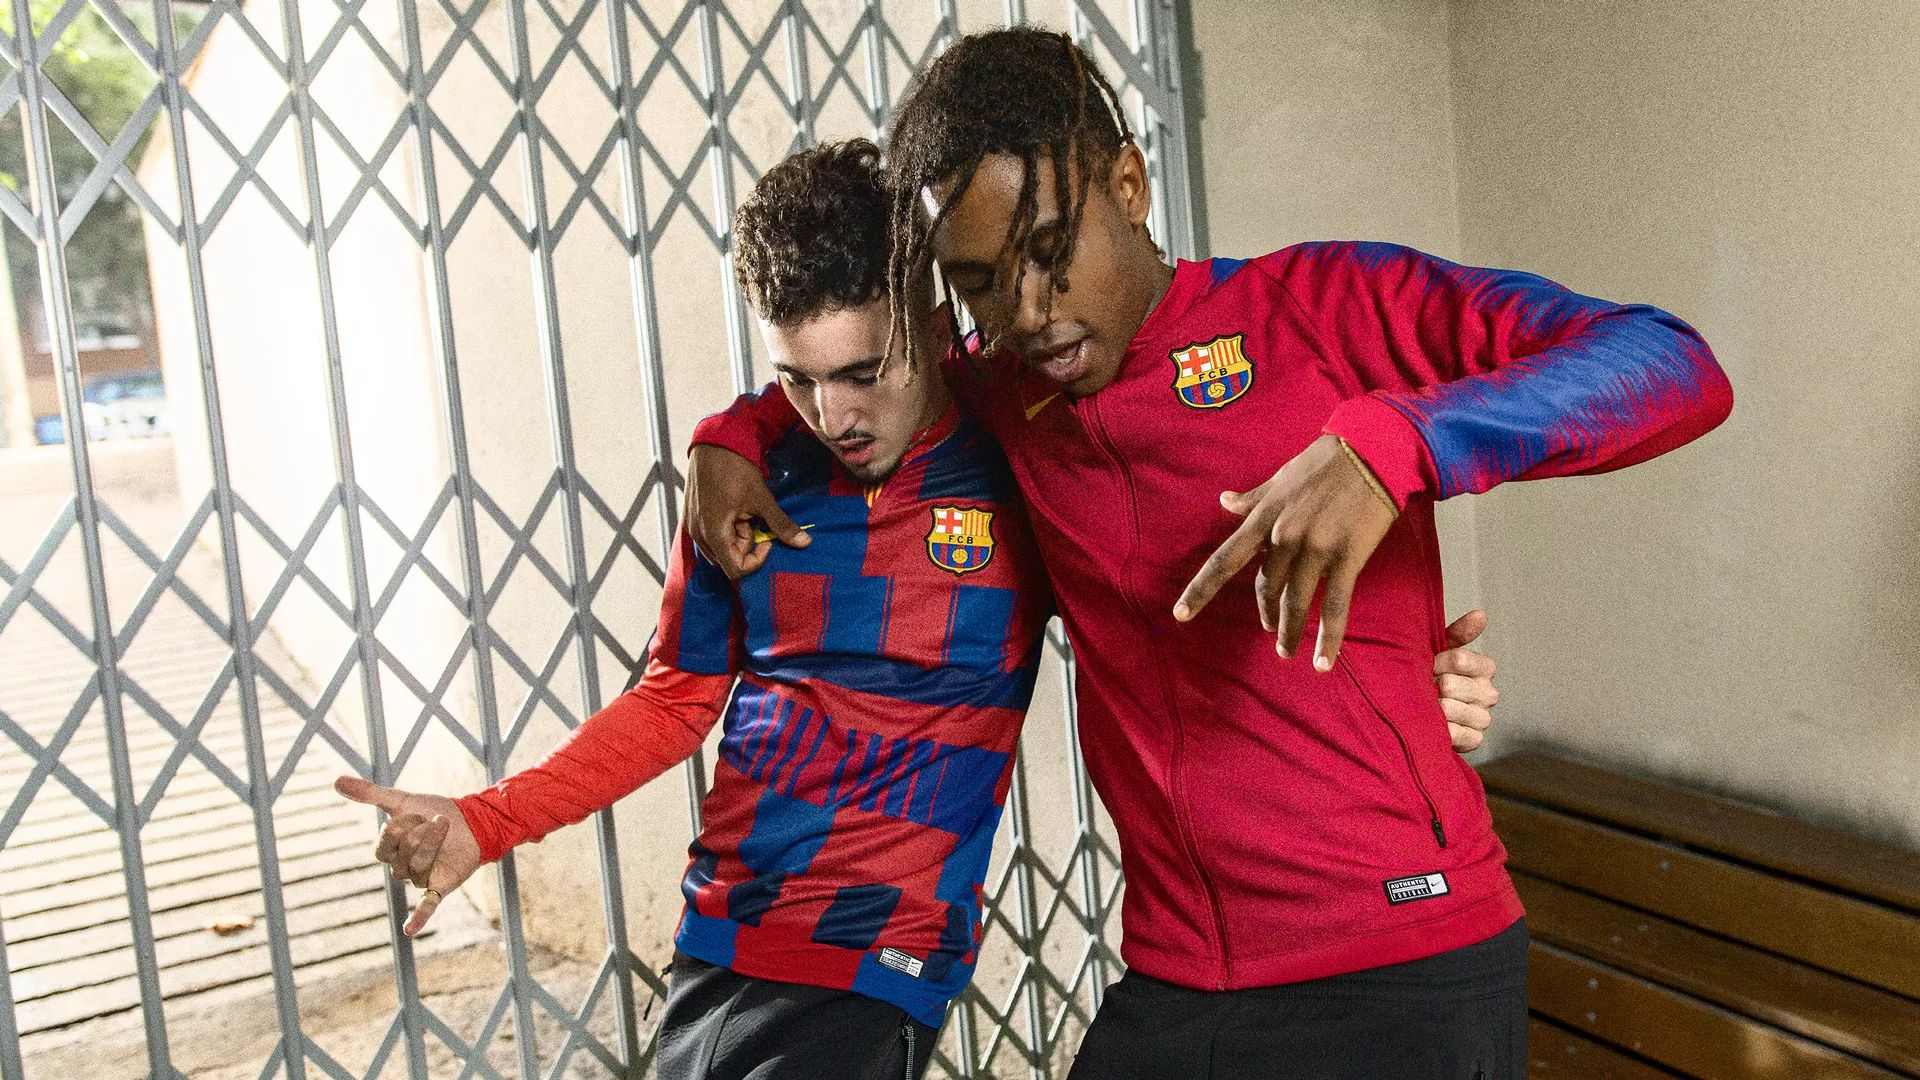 promo code 39d2d 22d5a Barcelona x Nike 20th Anniversary Mash-Up Jersey | 18/19 ...